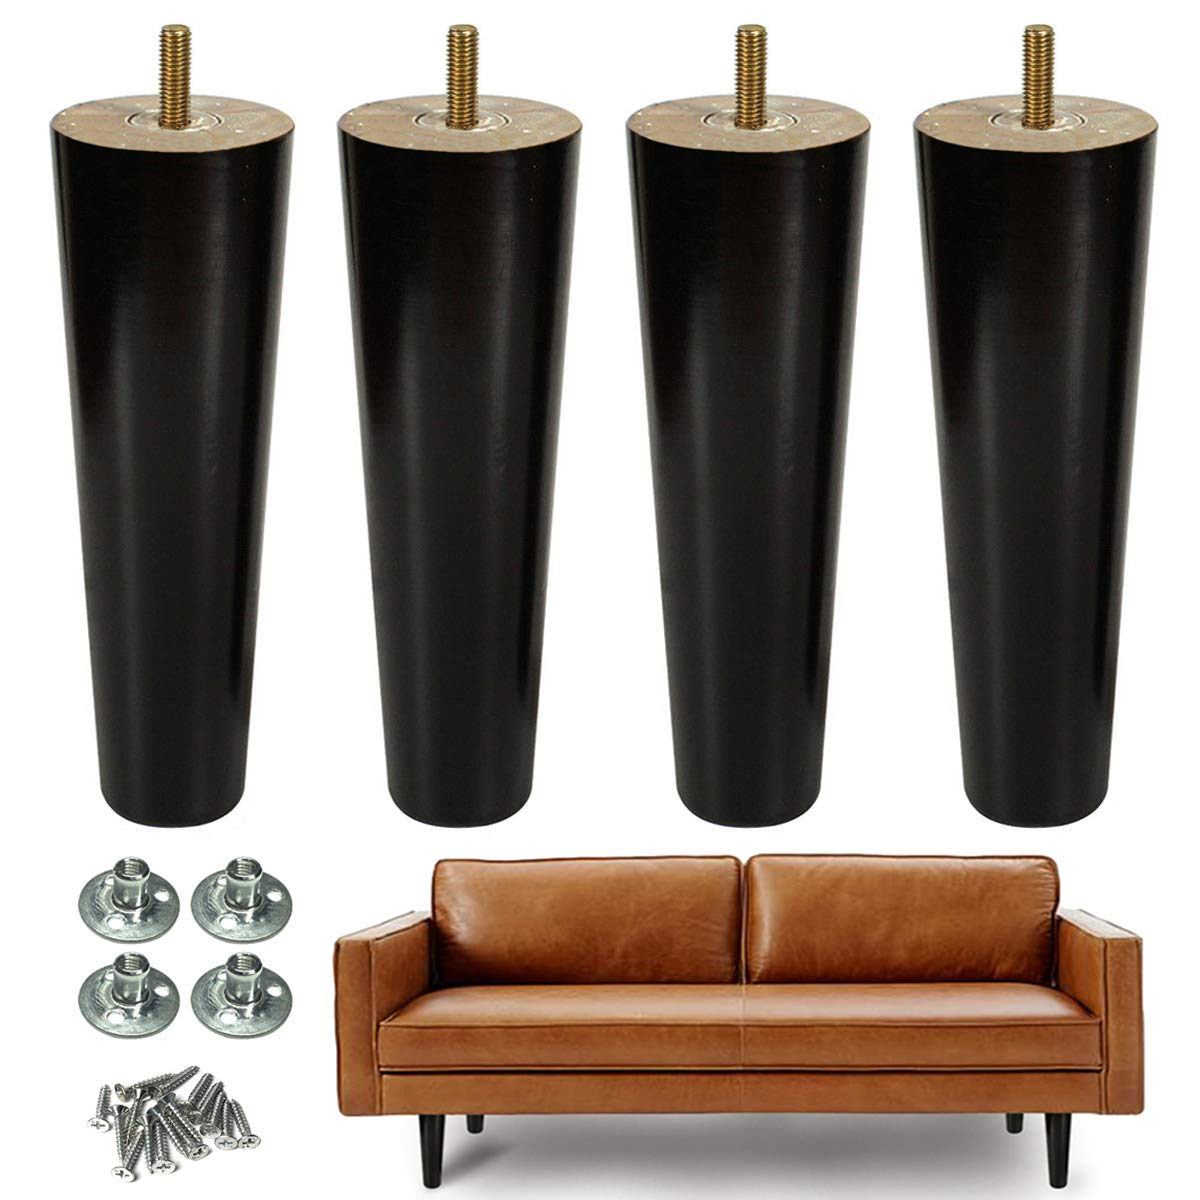 AORYVIC 8 inch Wood Furniture Legs Replacement Sofa Legs Pack of 4 for Couch Feet Chest of Drawers Cabinet DIY Furniture Project with Pre-drilled 5/16 Inch Bolt by AORYVIC (Image #1)